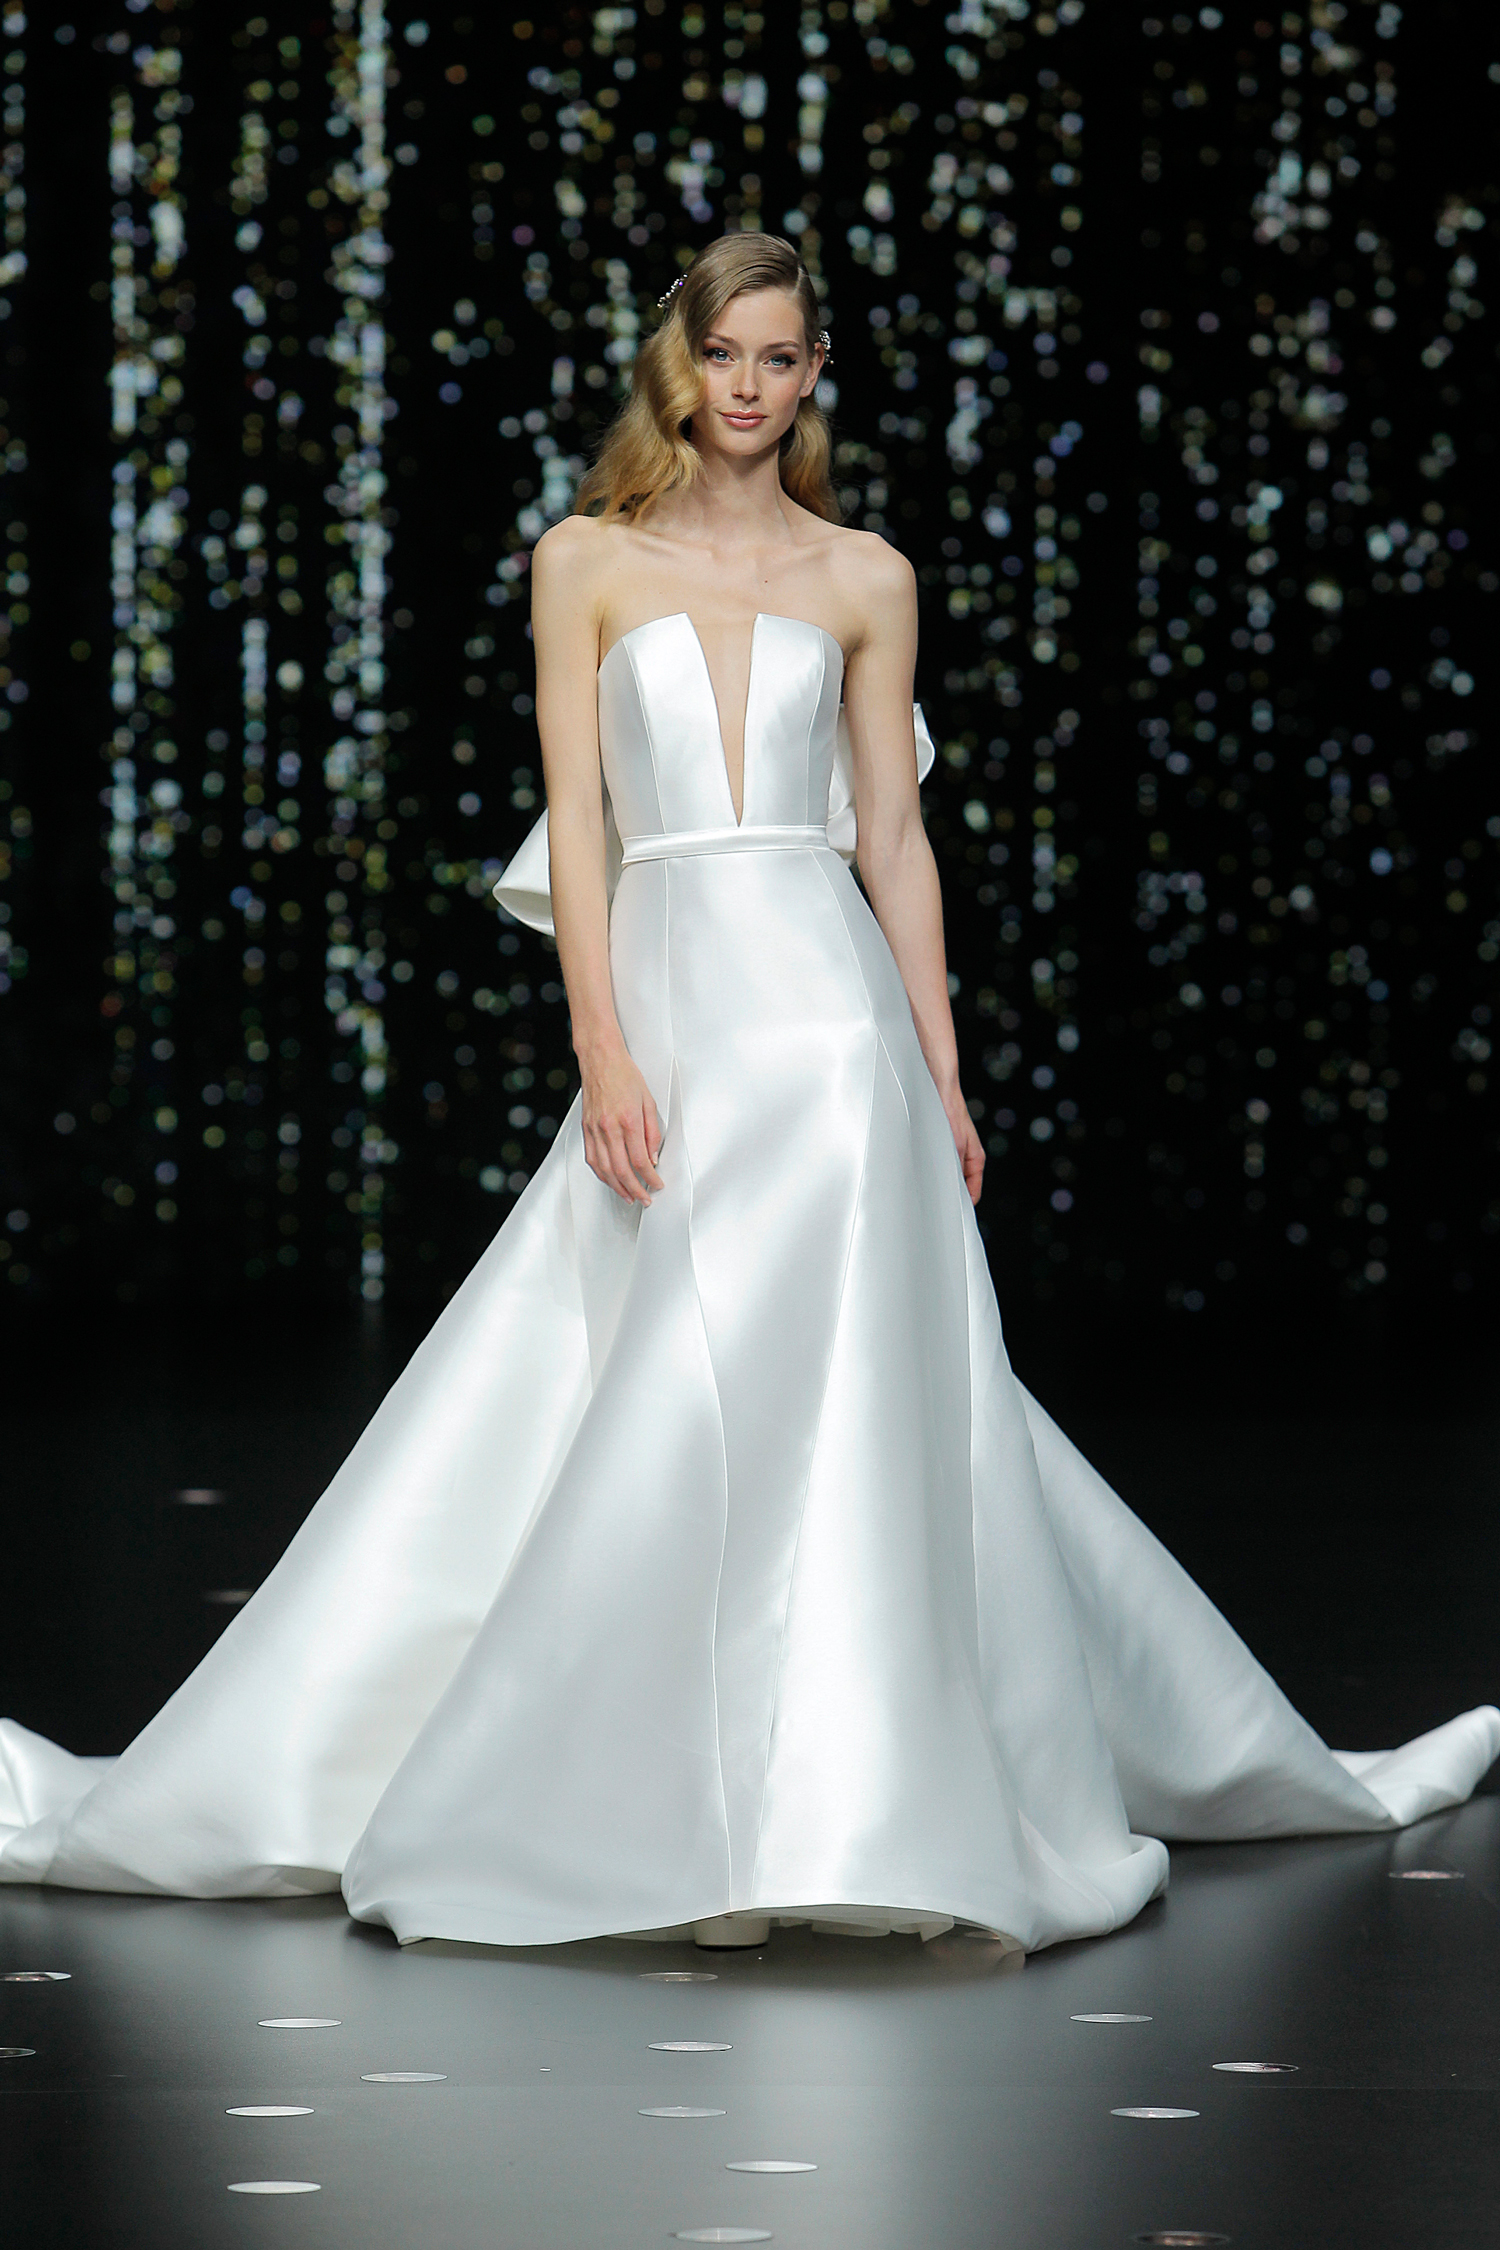 pronovias strapless plunging neckline a-line wedding dress spring 2020